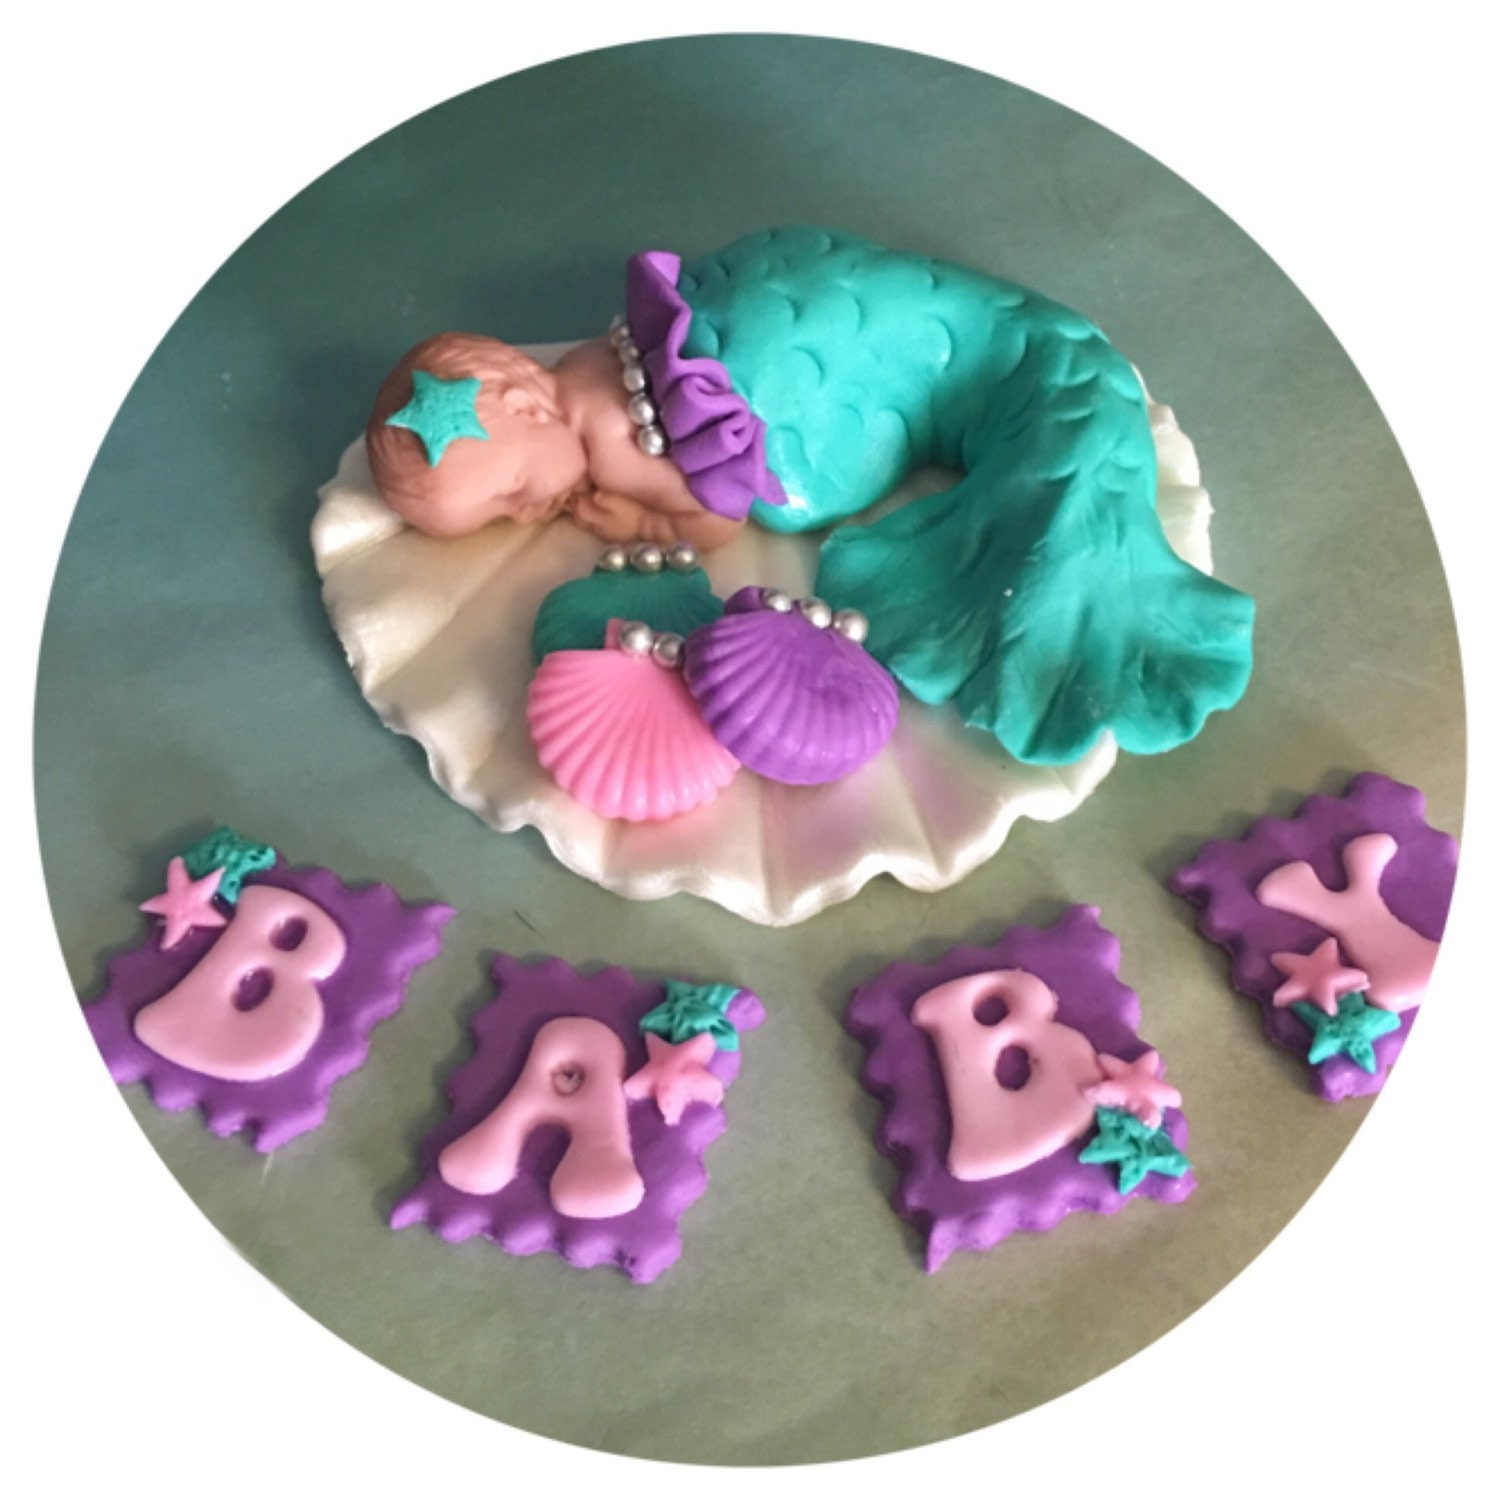 mermaid baby shower cake topper fondant baby mermaid nursery